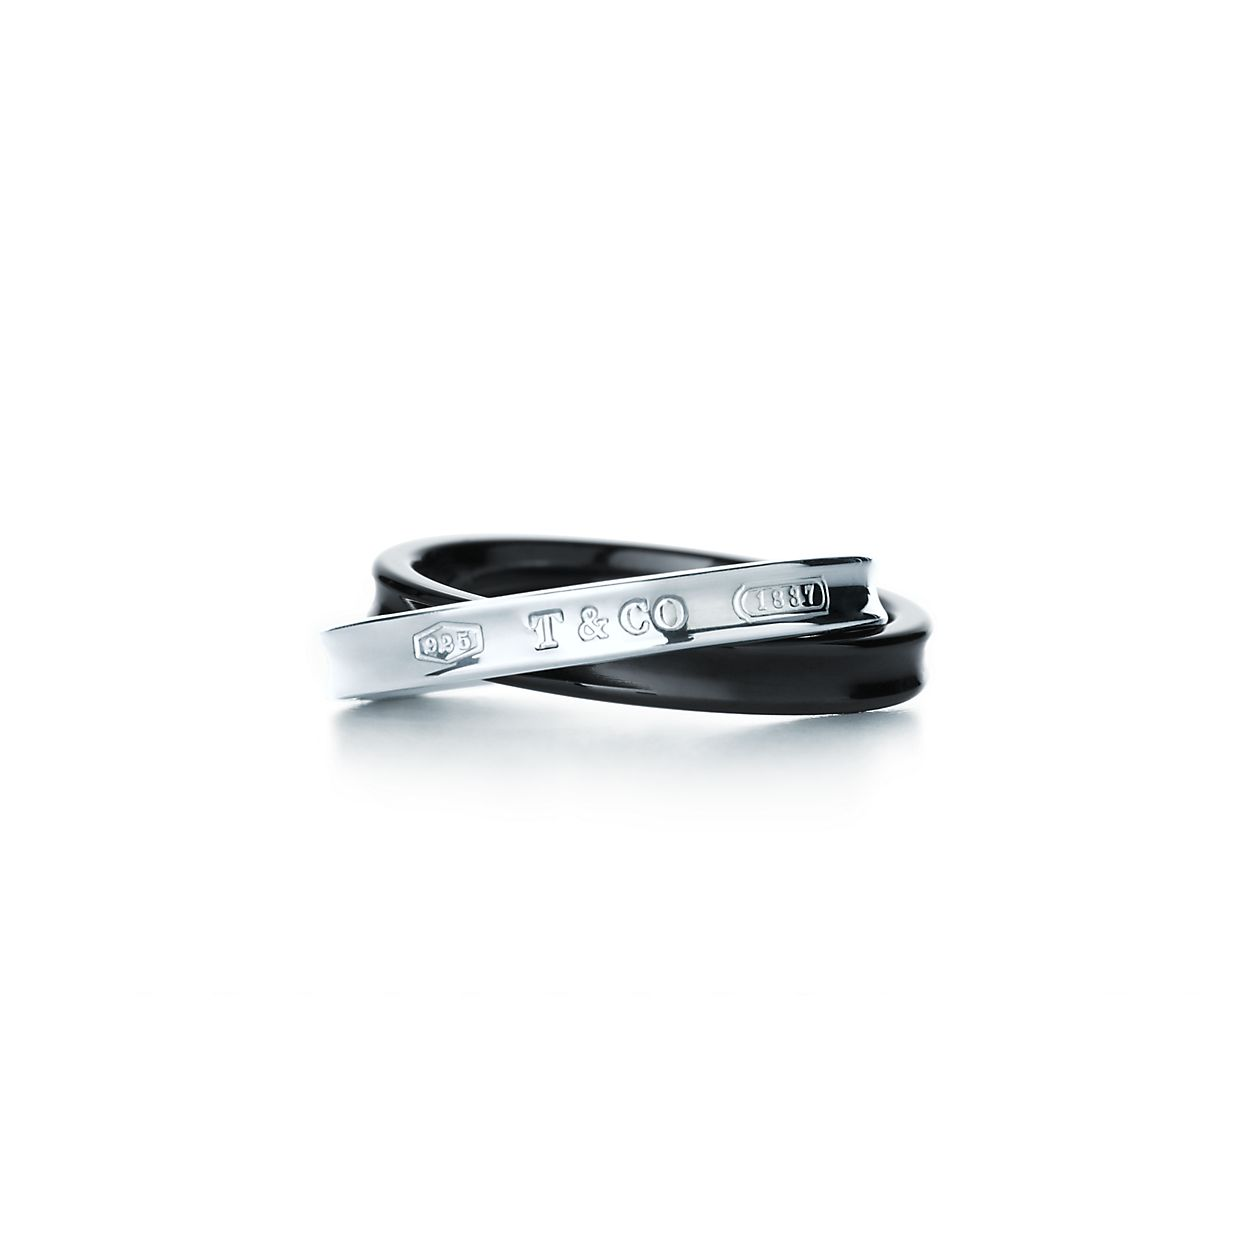 Tiffany 1837 interlocking circles ring in sterling silver - Size 6 Tiffany & Co. CgFy3bMHV